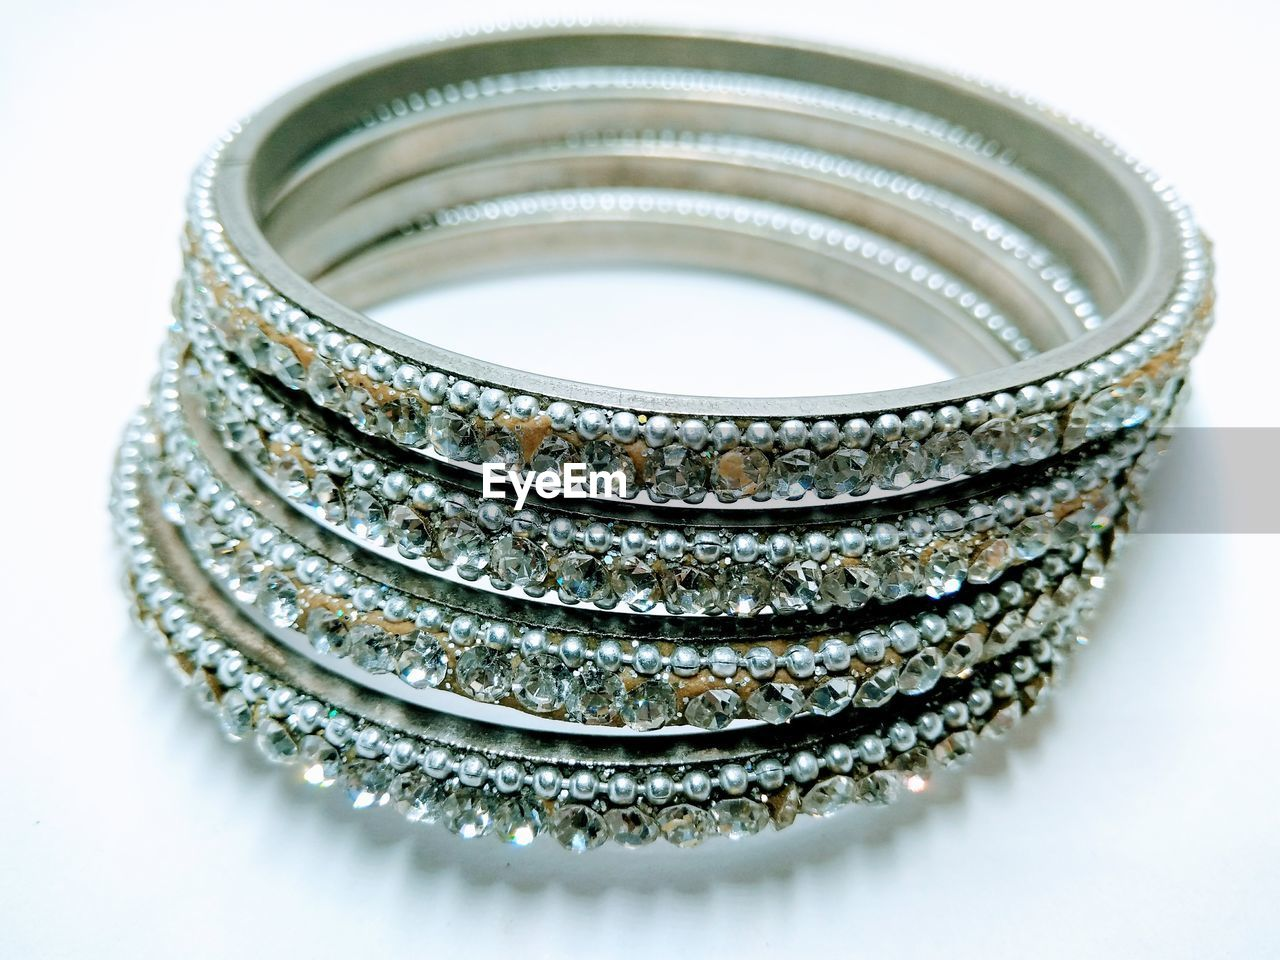 Close-up of bangles against white background